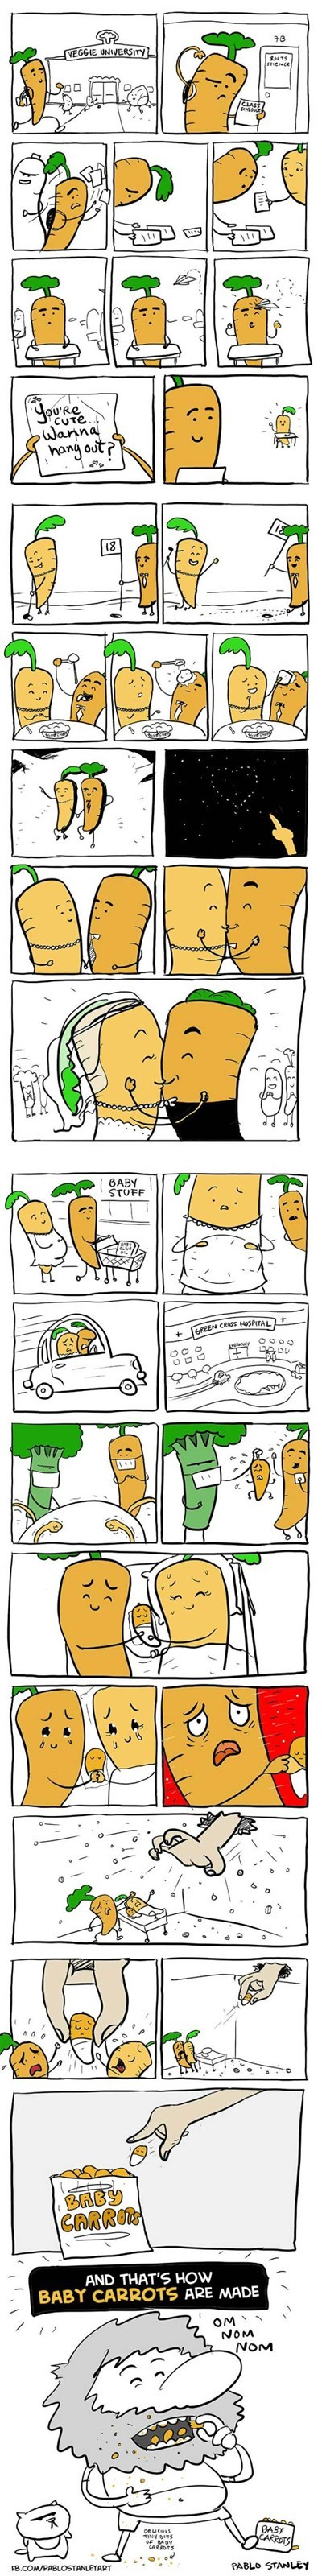 childbirth comics puns carrots g rated Parenting FAILS